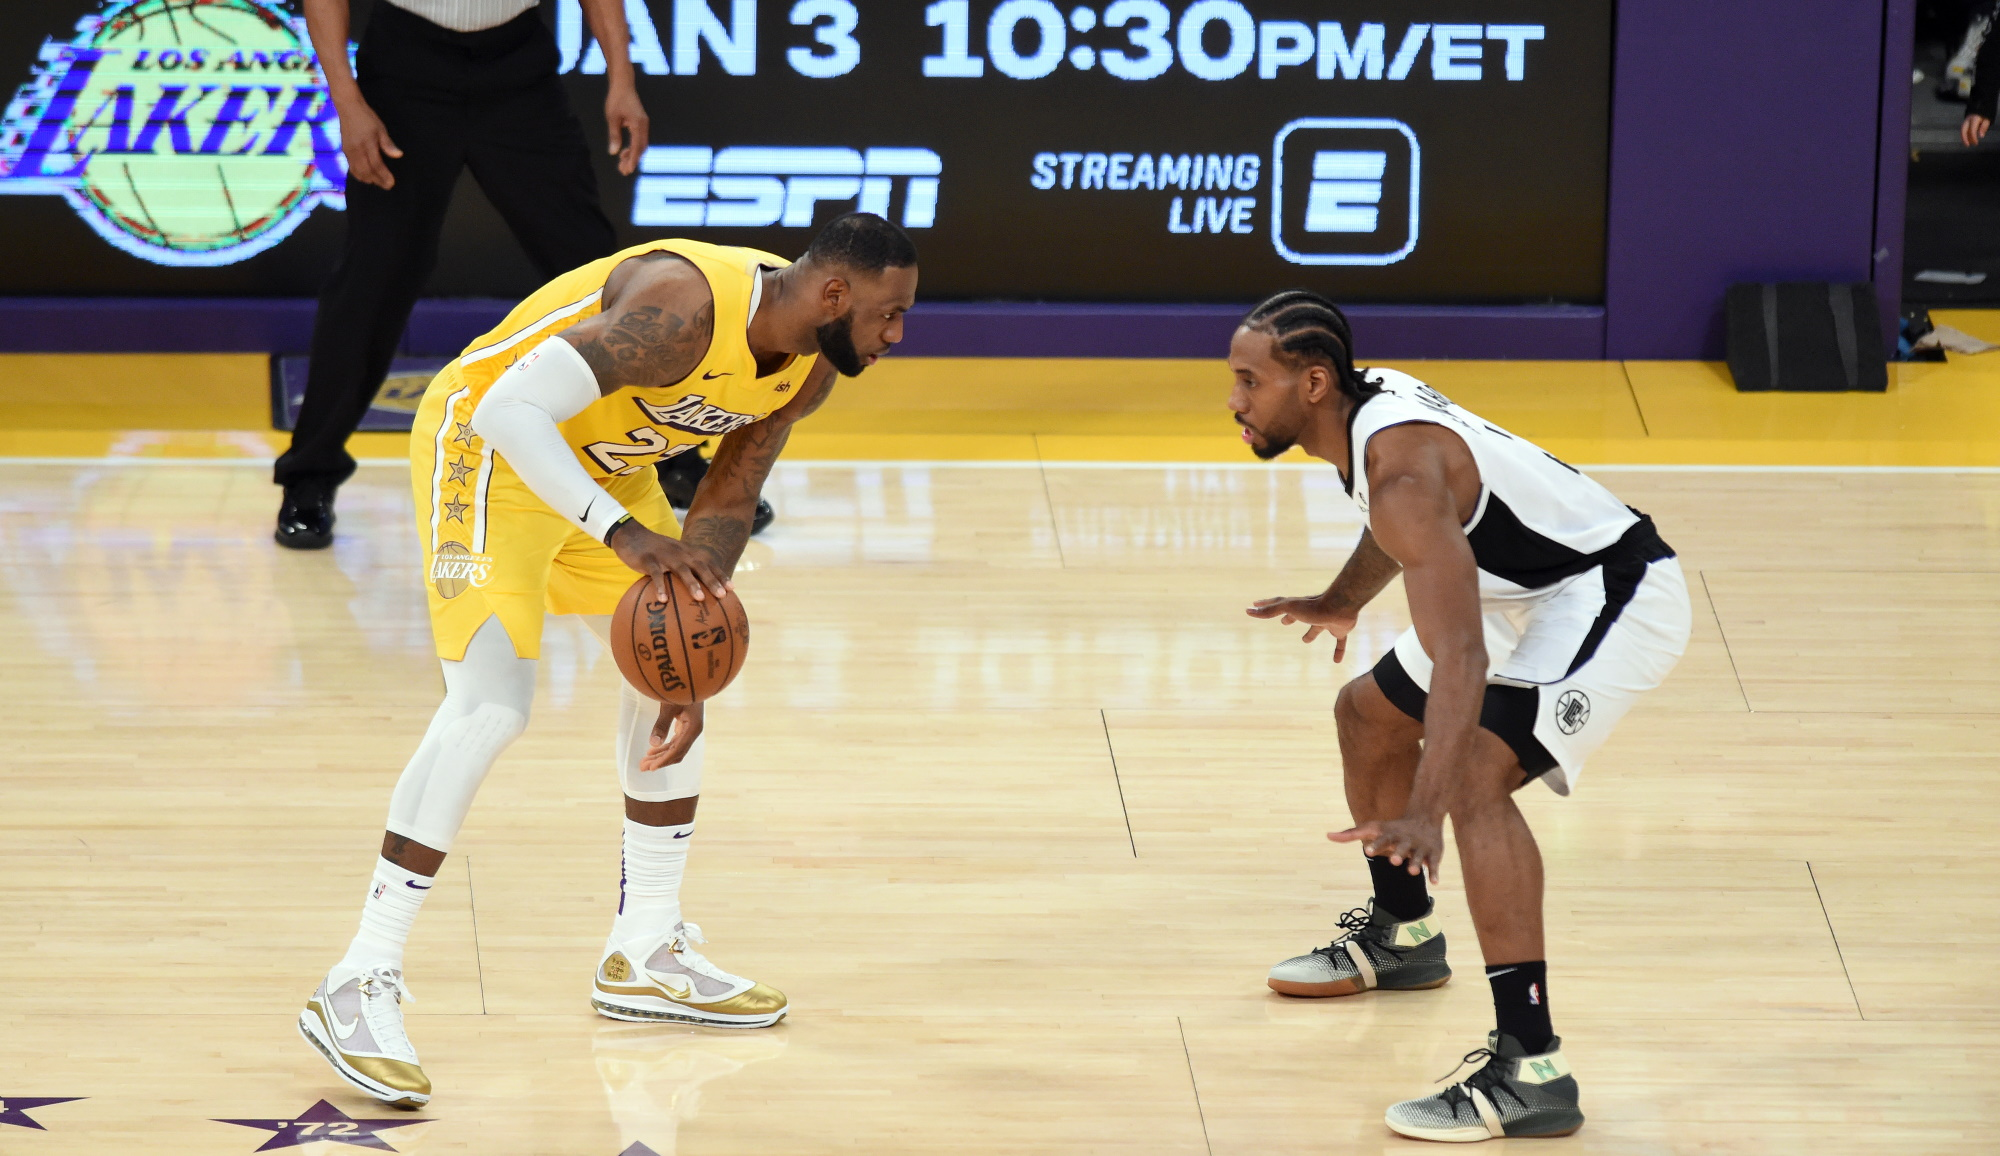 LeBron James and Kawhi Leonard, Los Angeles Lakers vs LA Clippers at STAPLES Center